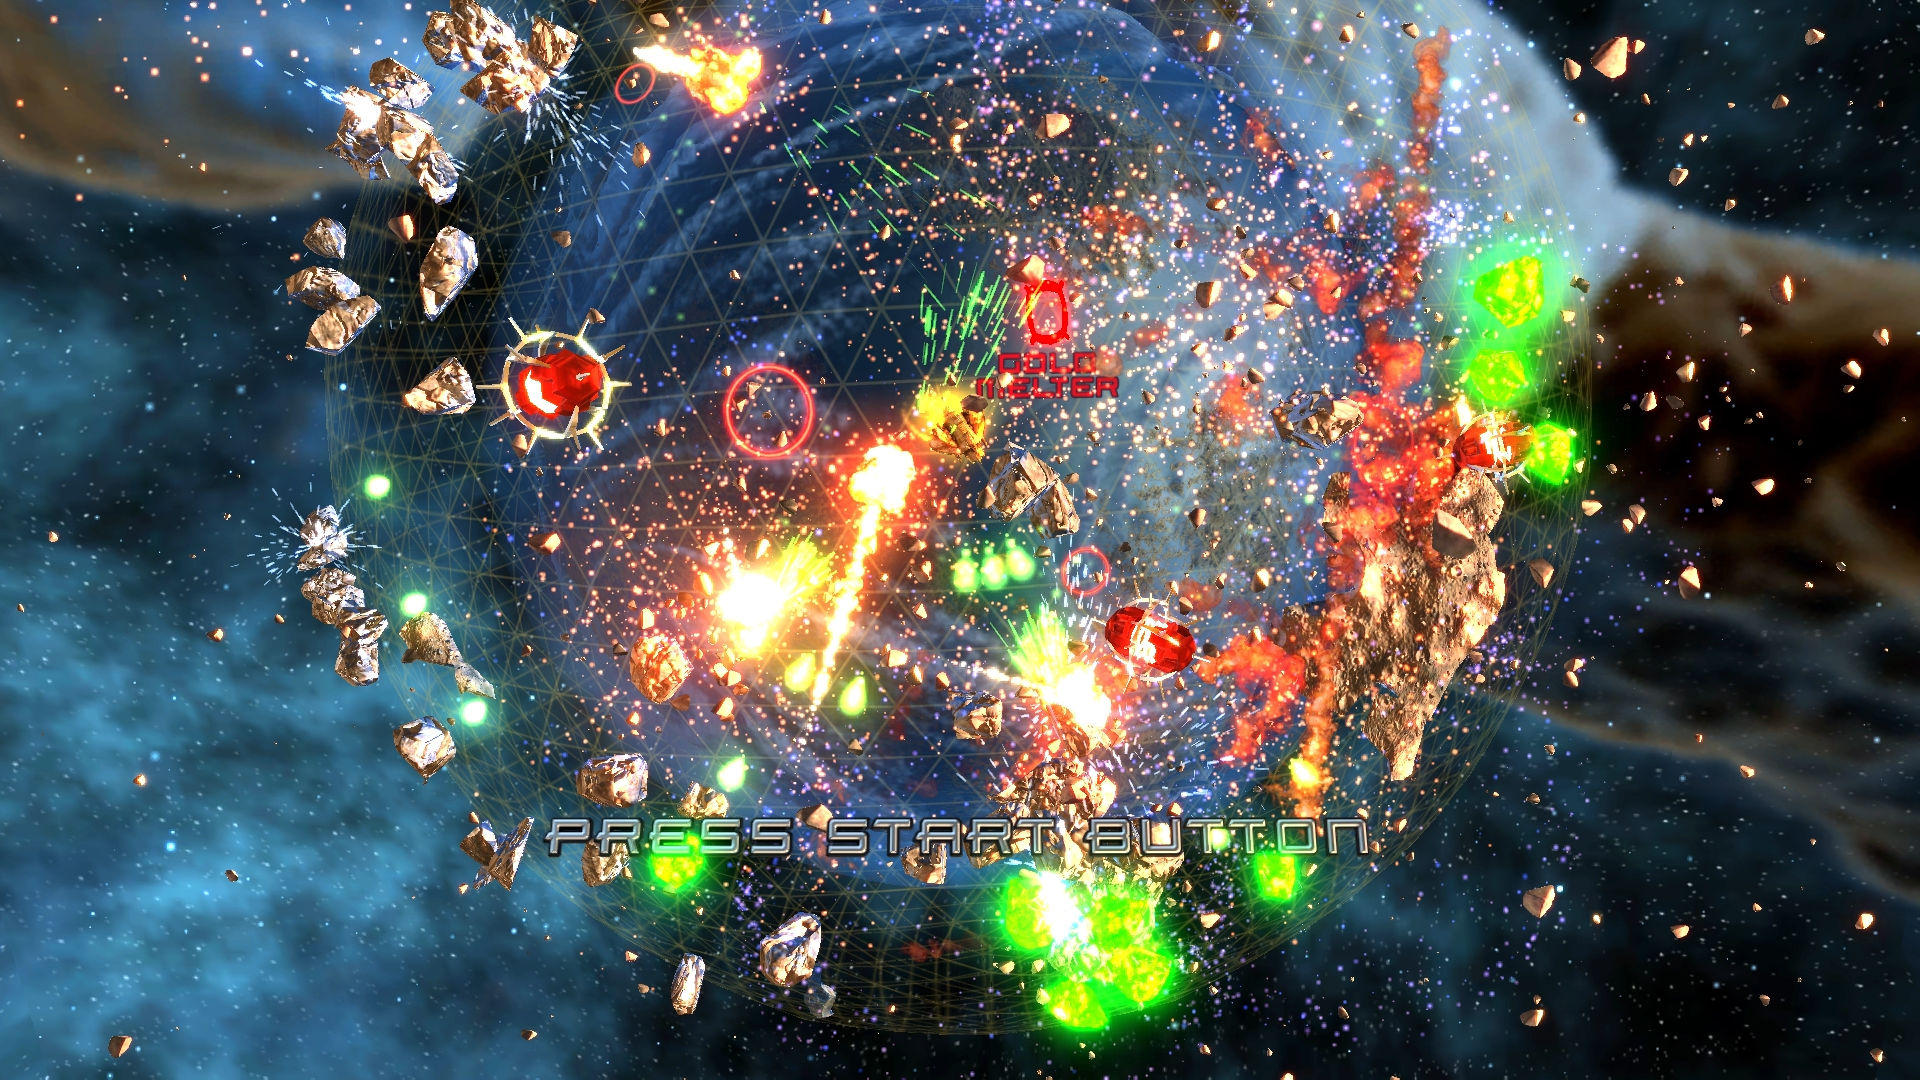 Click image for larger version  Name:Super Stardust HD RGB32.png Views:2751 Size:3.02 MB ID:35693